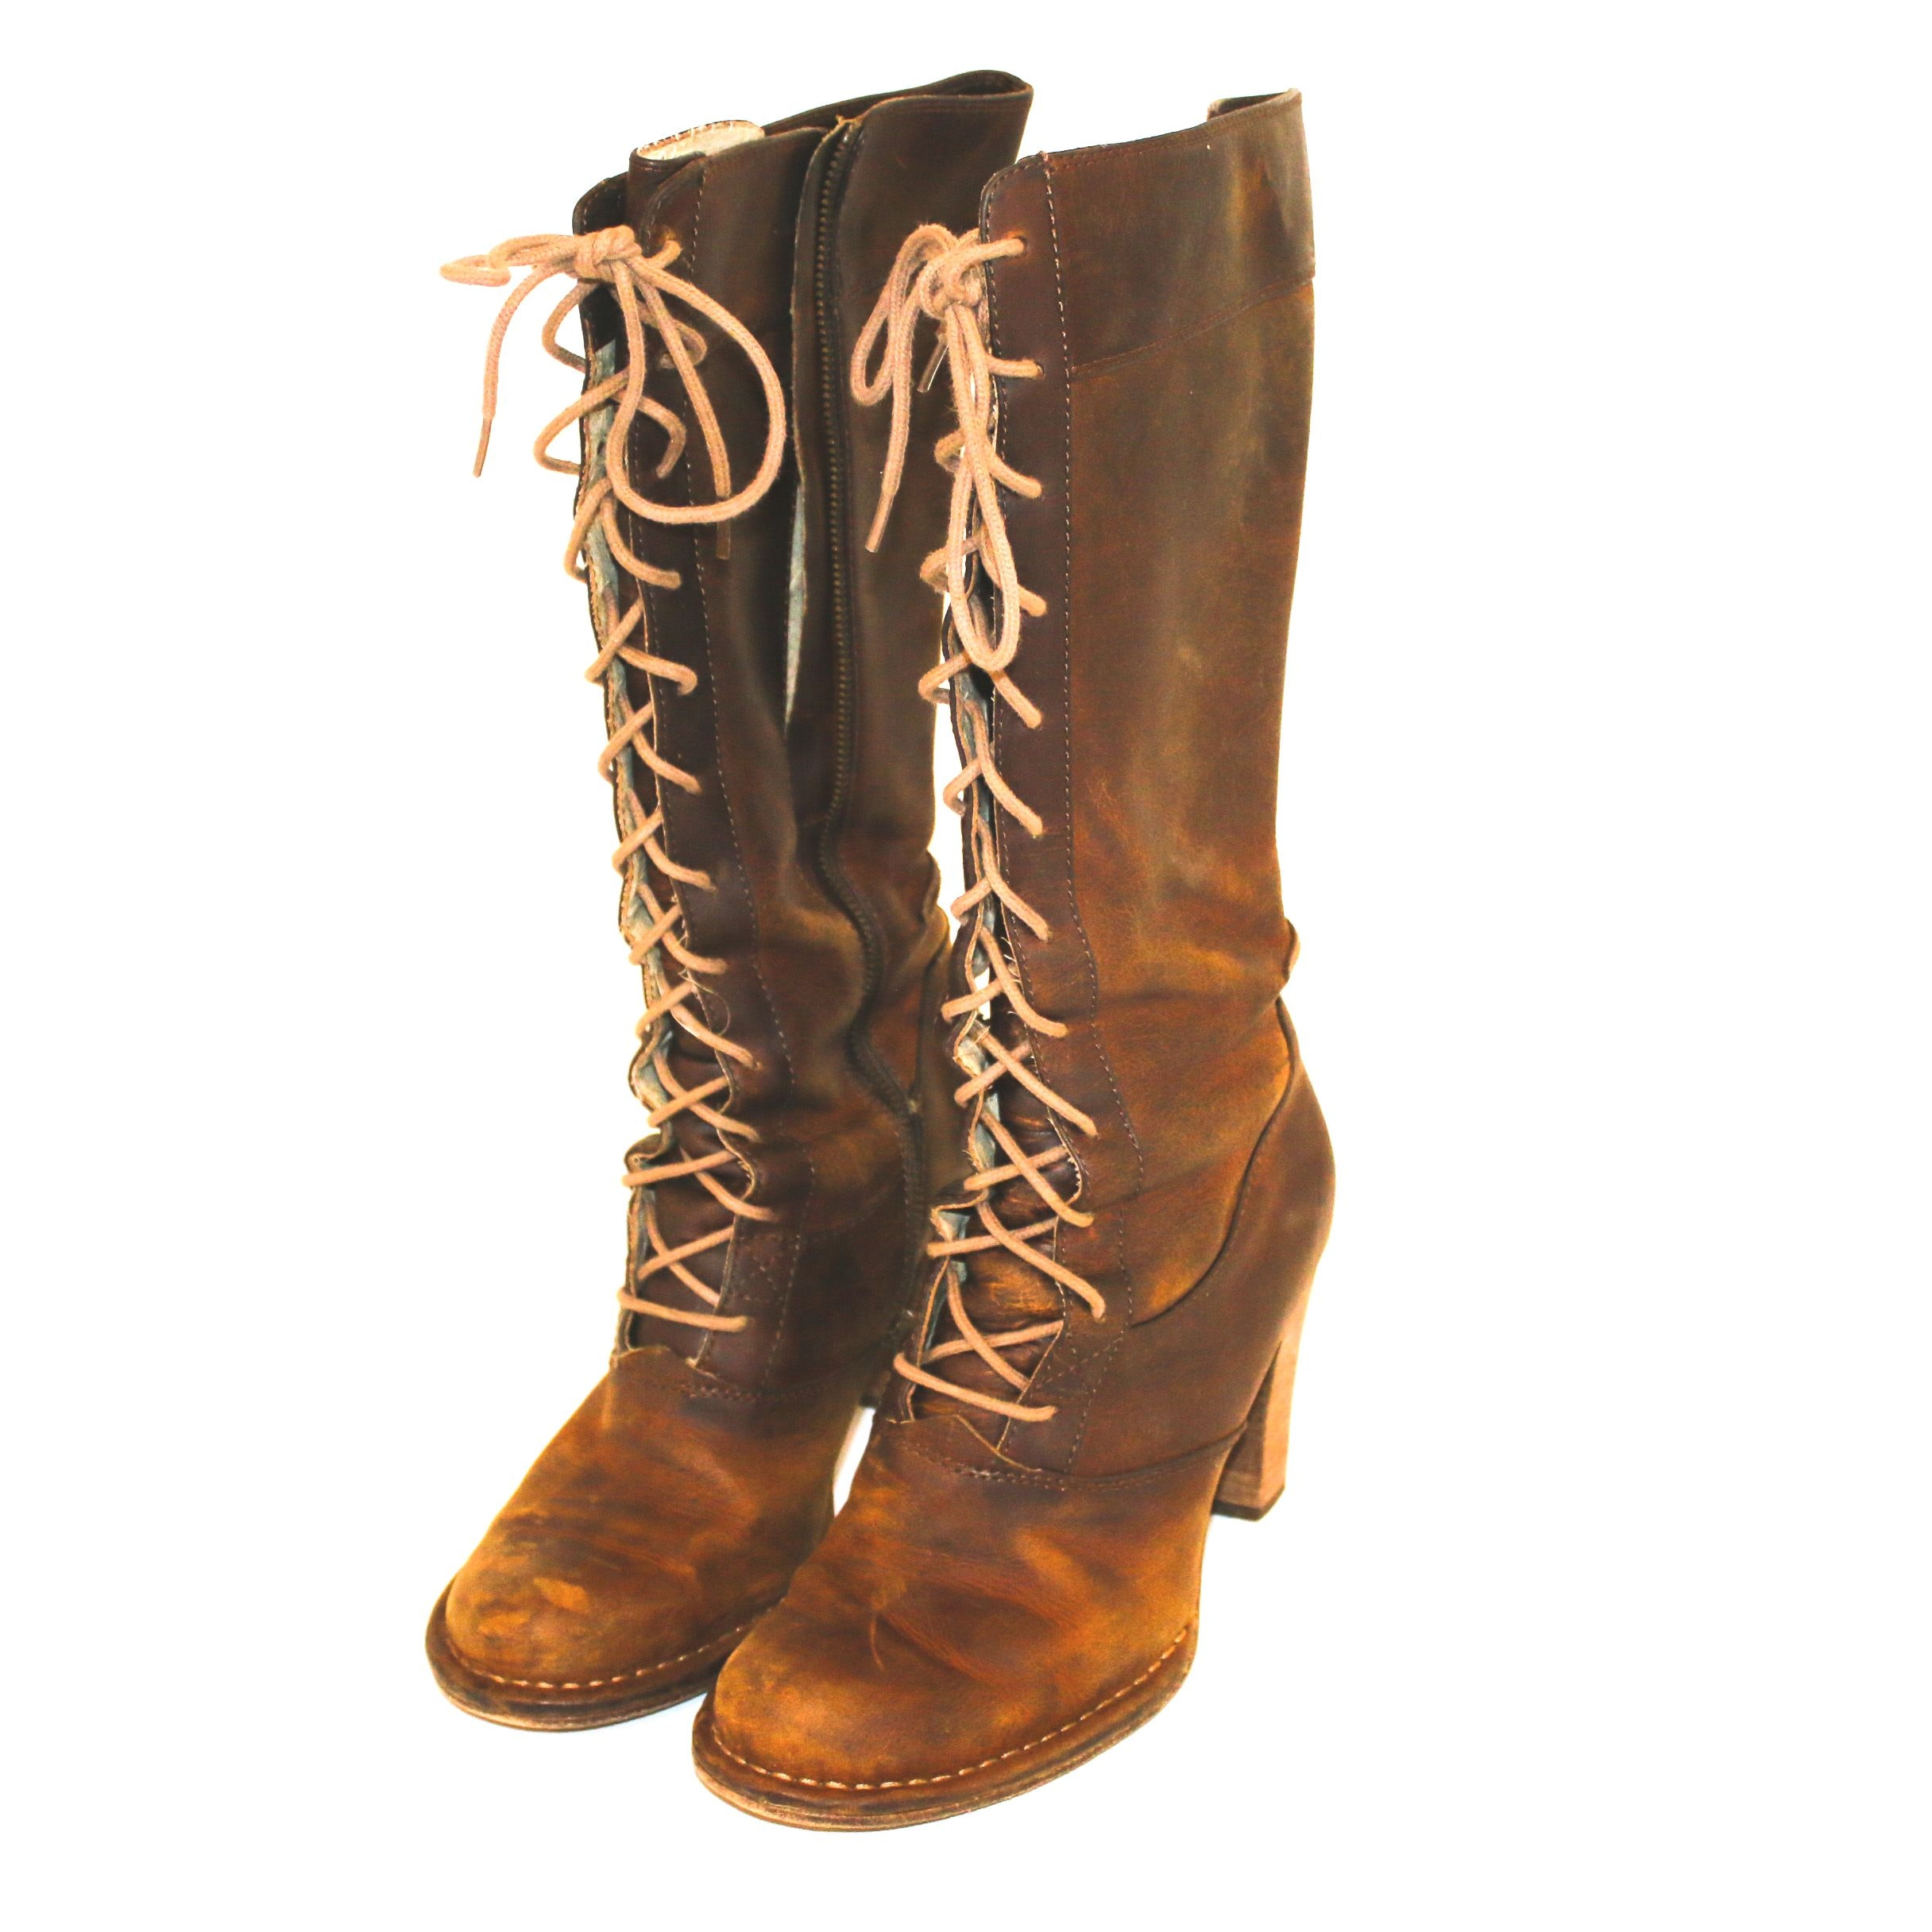 Frye Brown Leather Lace-Up Tall Boots